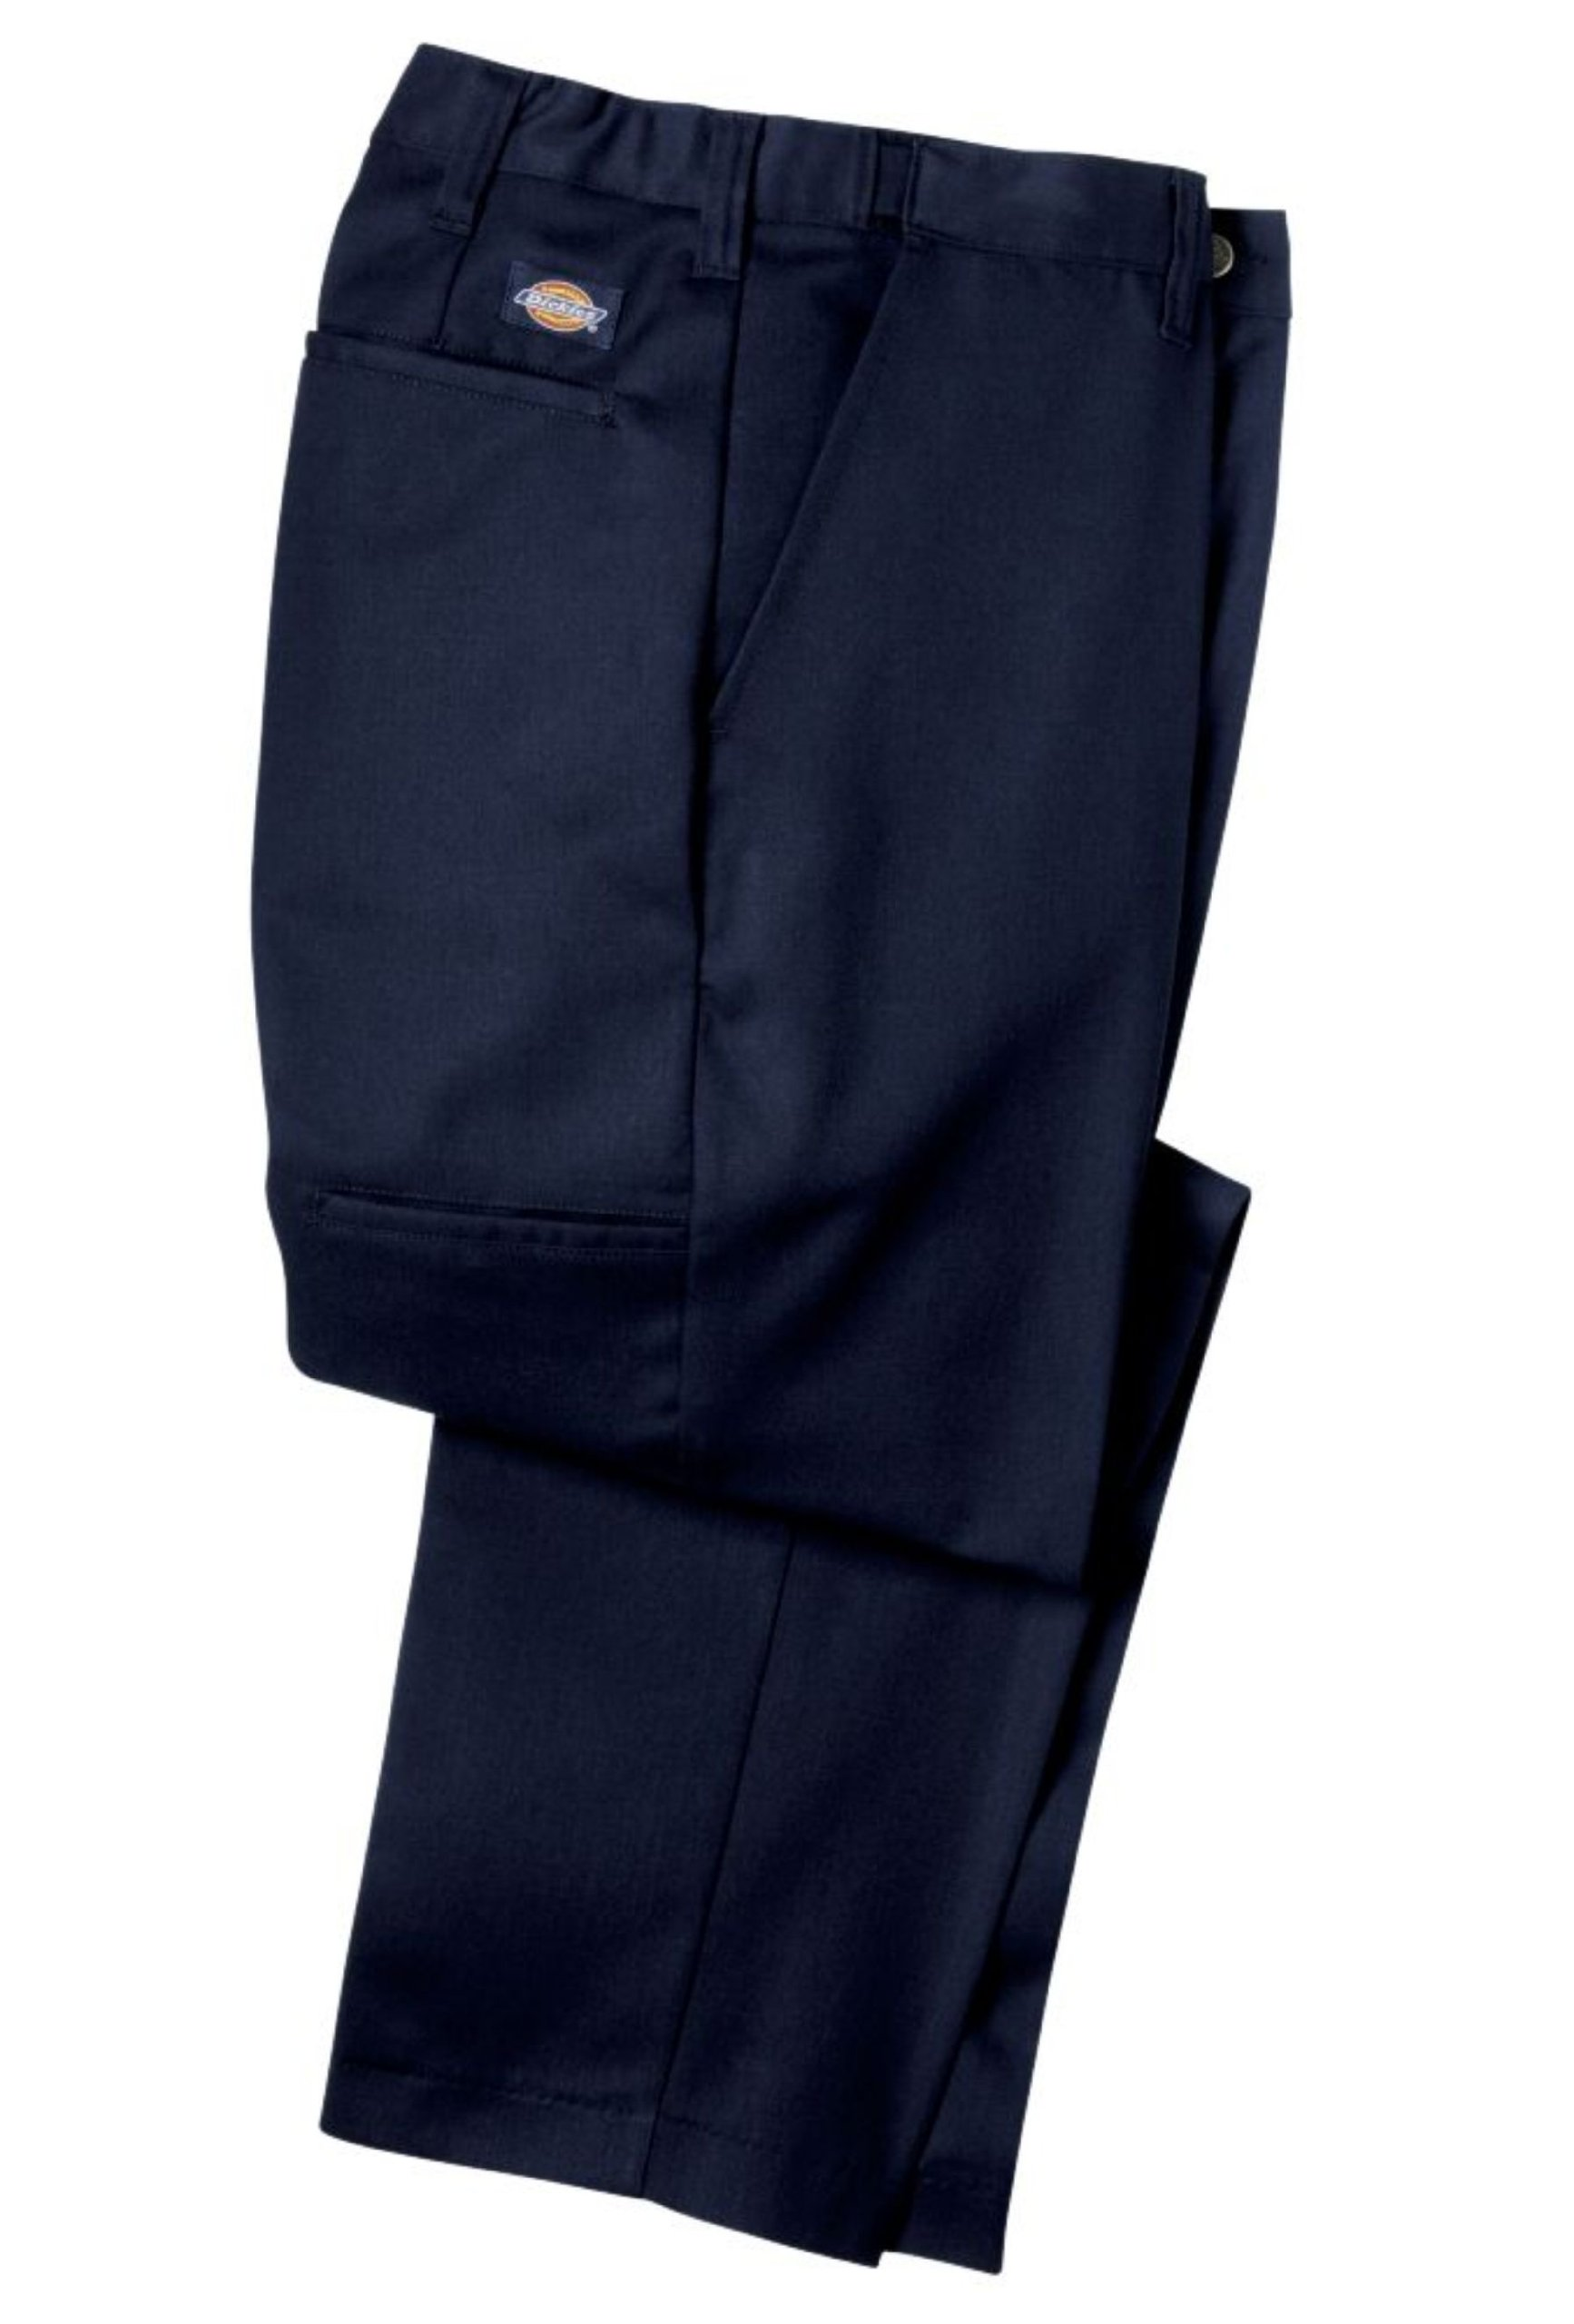 Dickies Occupational Workwear LP700NV 34x32 Polyester/ Cotton Relaxed Fit Men's Premium Industrial Flat Front Comfort Waist Pant with Straight Leg, 34'' Waist Size, 32'' Inseam, Navy Blue